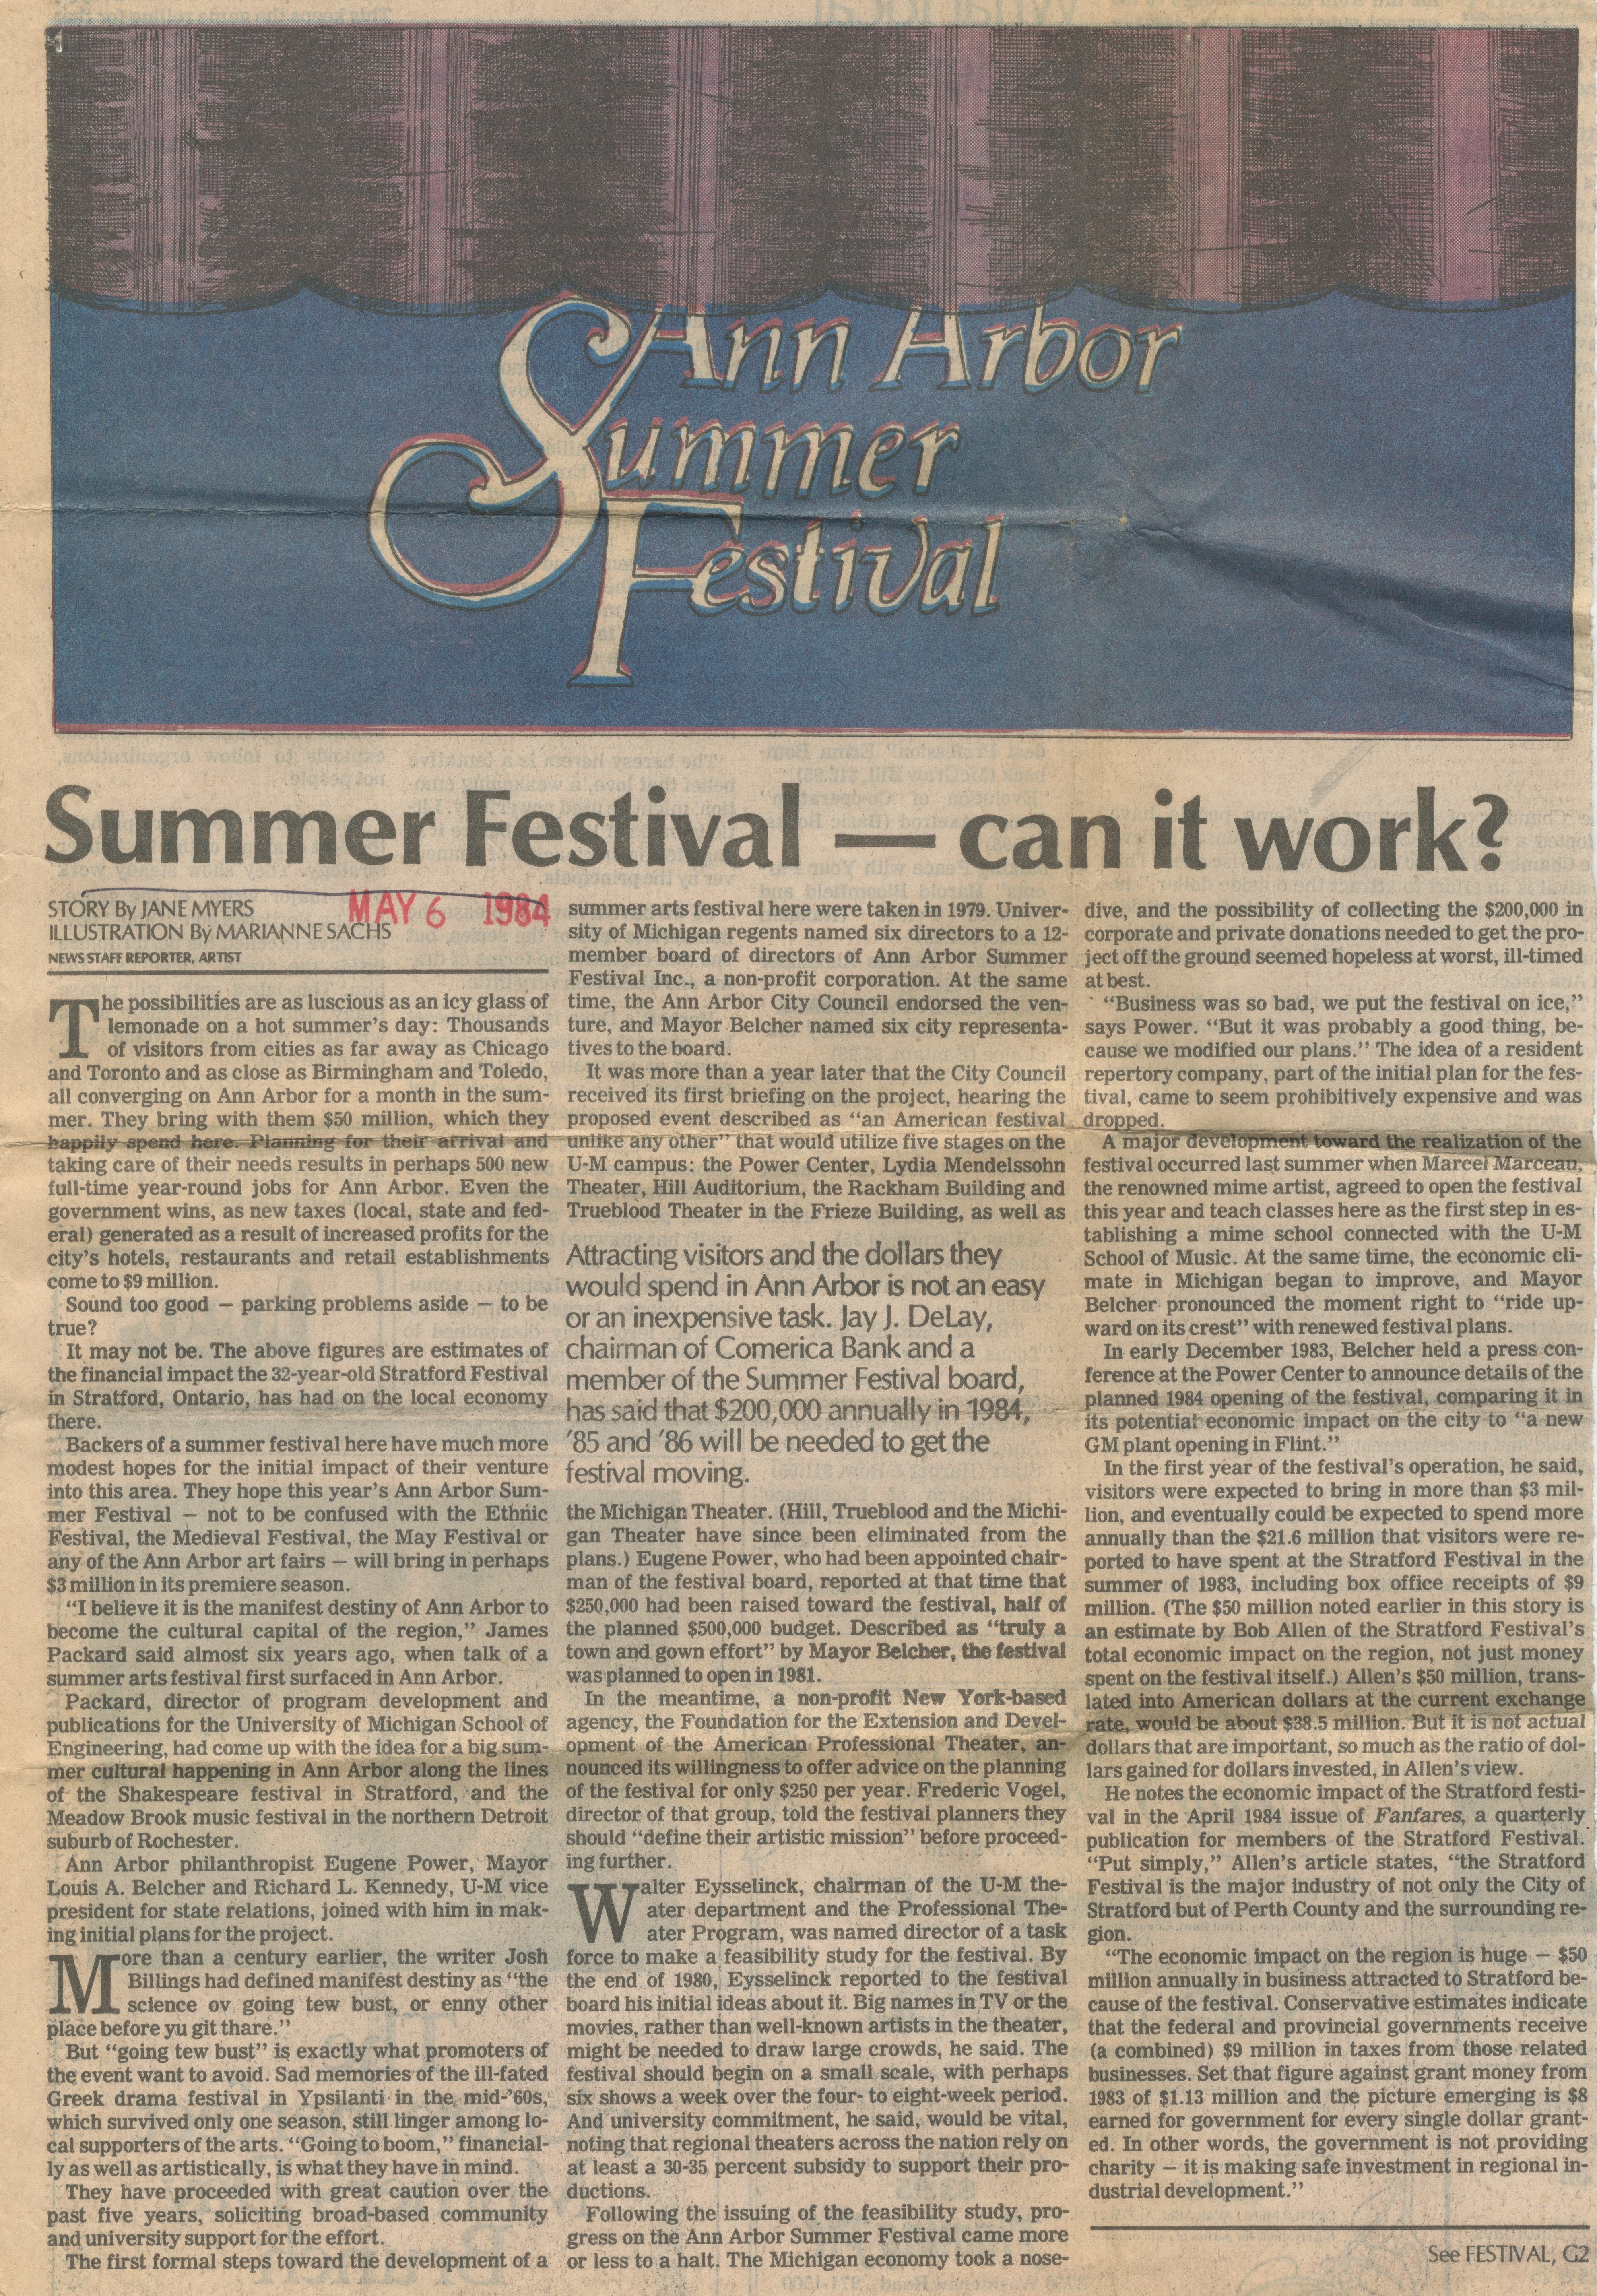 Summer Festival - can it work? image